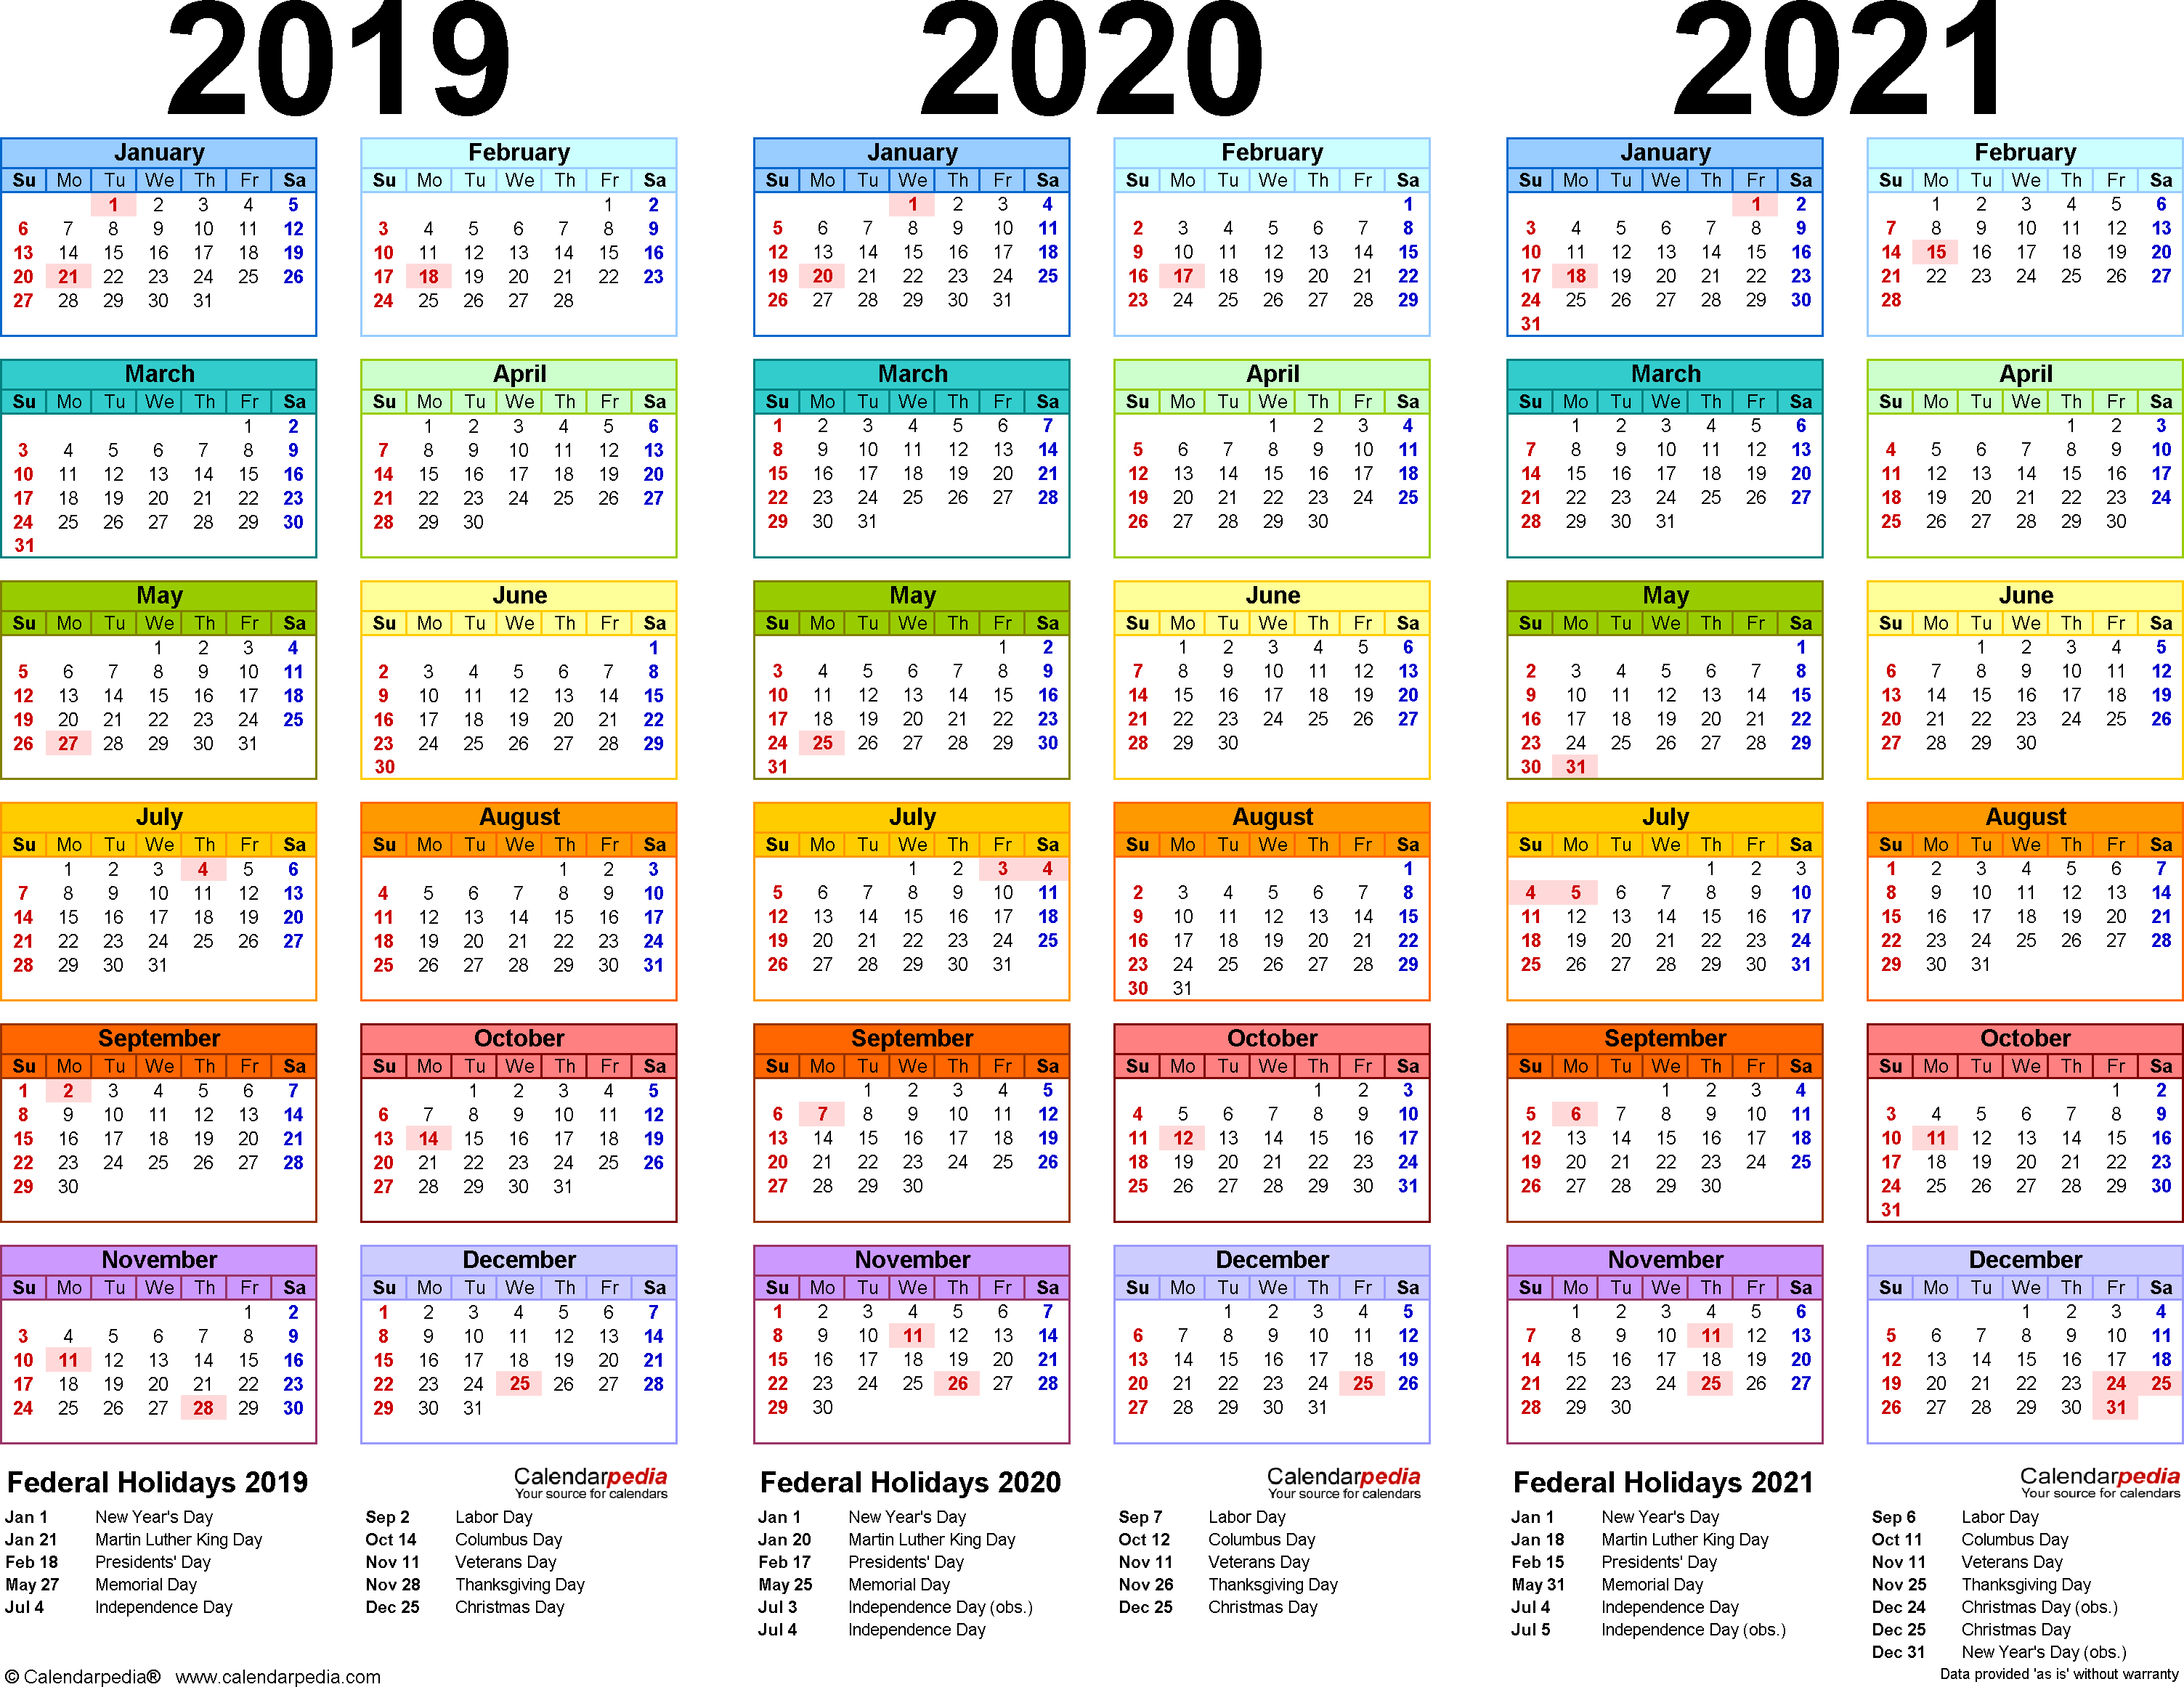 Yearly Calendar 2019 And 2021 Schedules and Events – Greate Bay Villas Condominium Association